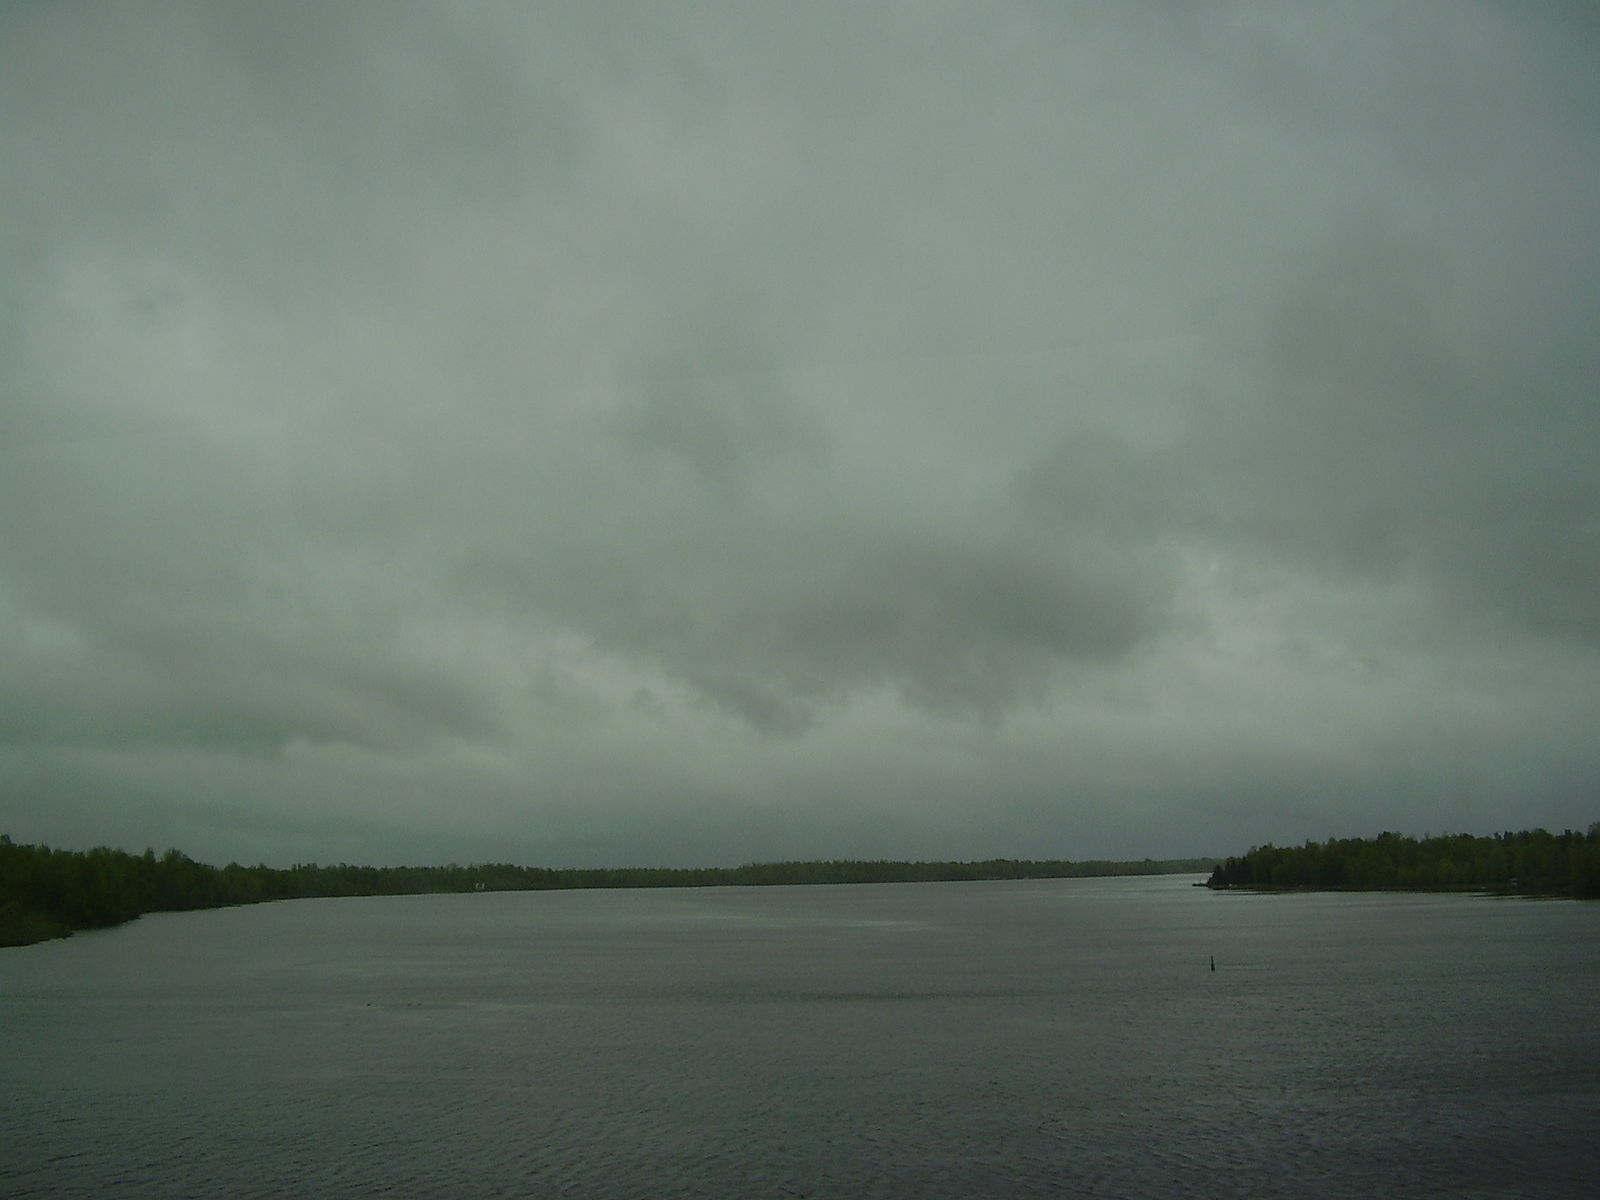 A grey sky full of heavy clouds hangs over the equally grey Rideau River. Photo by Leslie Mateus, via Wiki Free Images